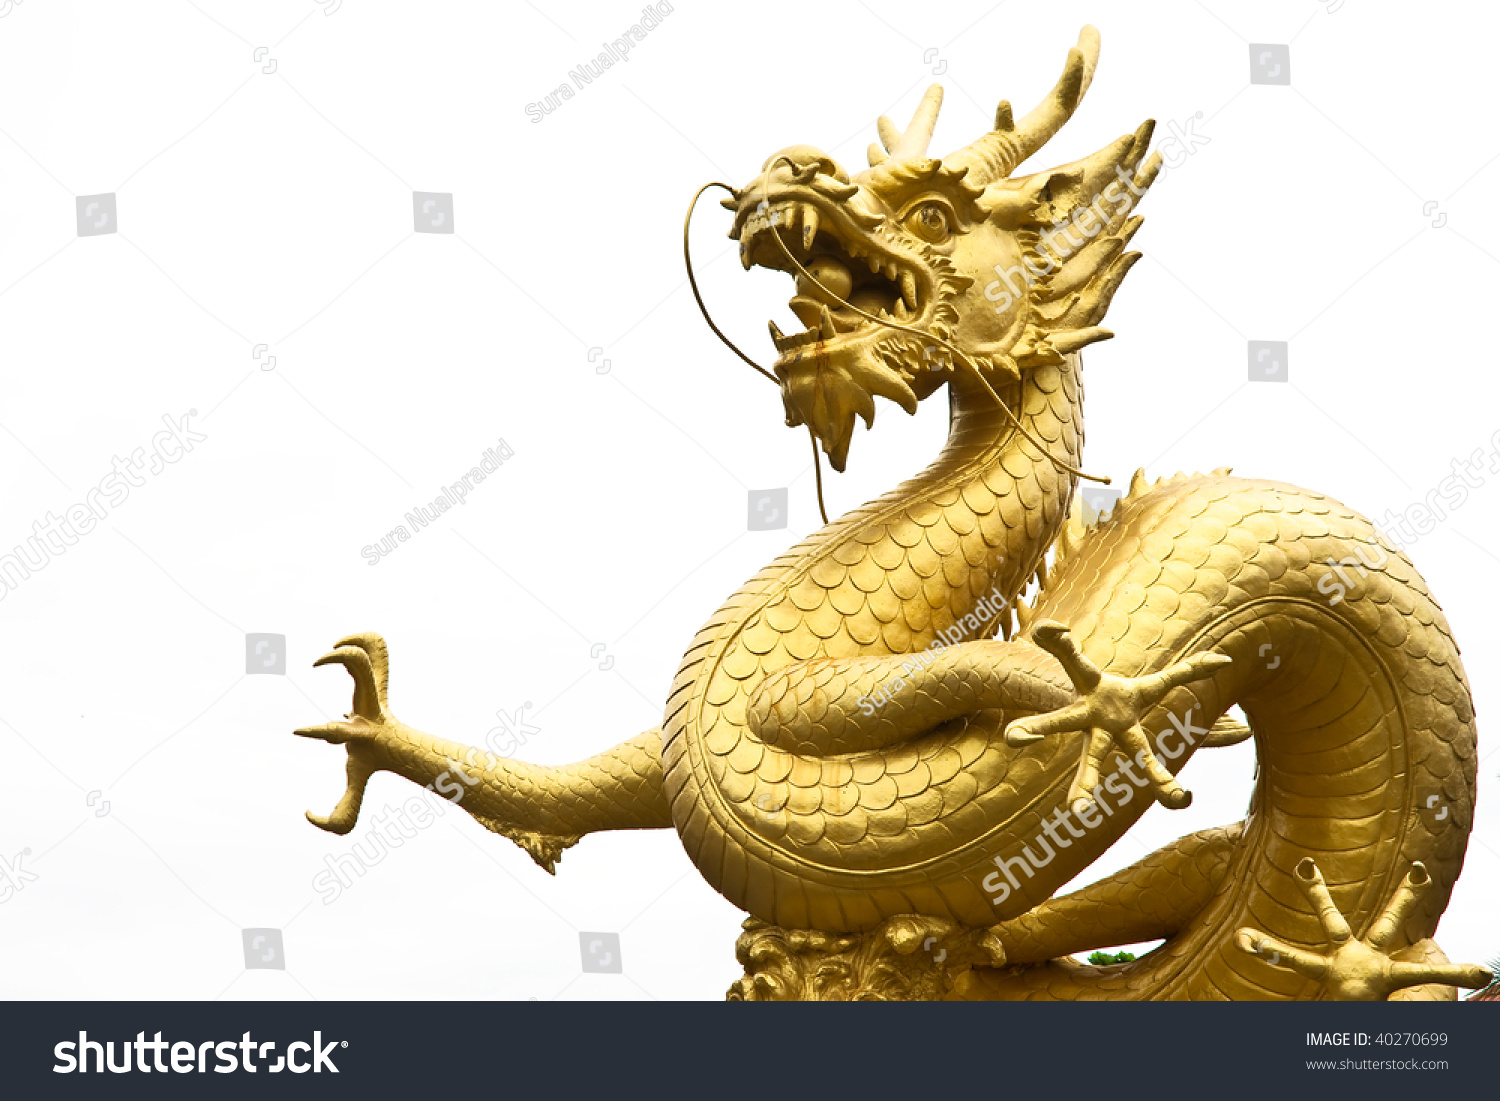 Giant Dragon Statue Golden Gragon Statue Stock Photo 40270699 Shutterstock